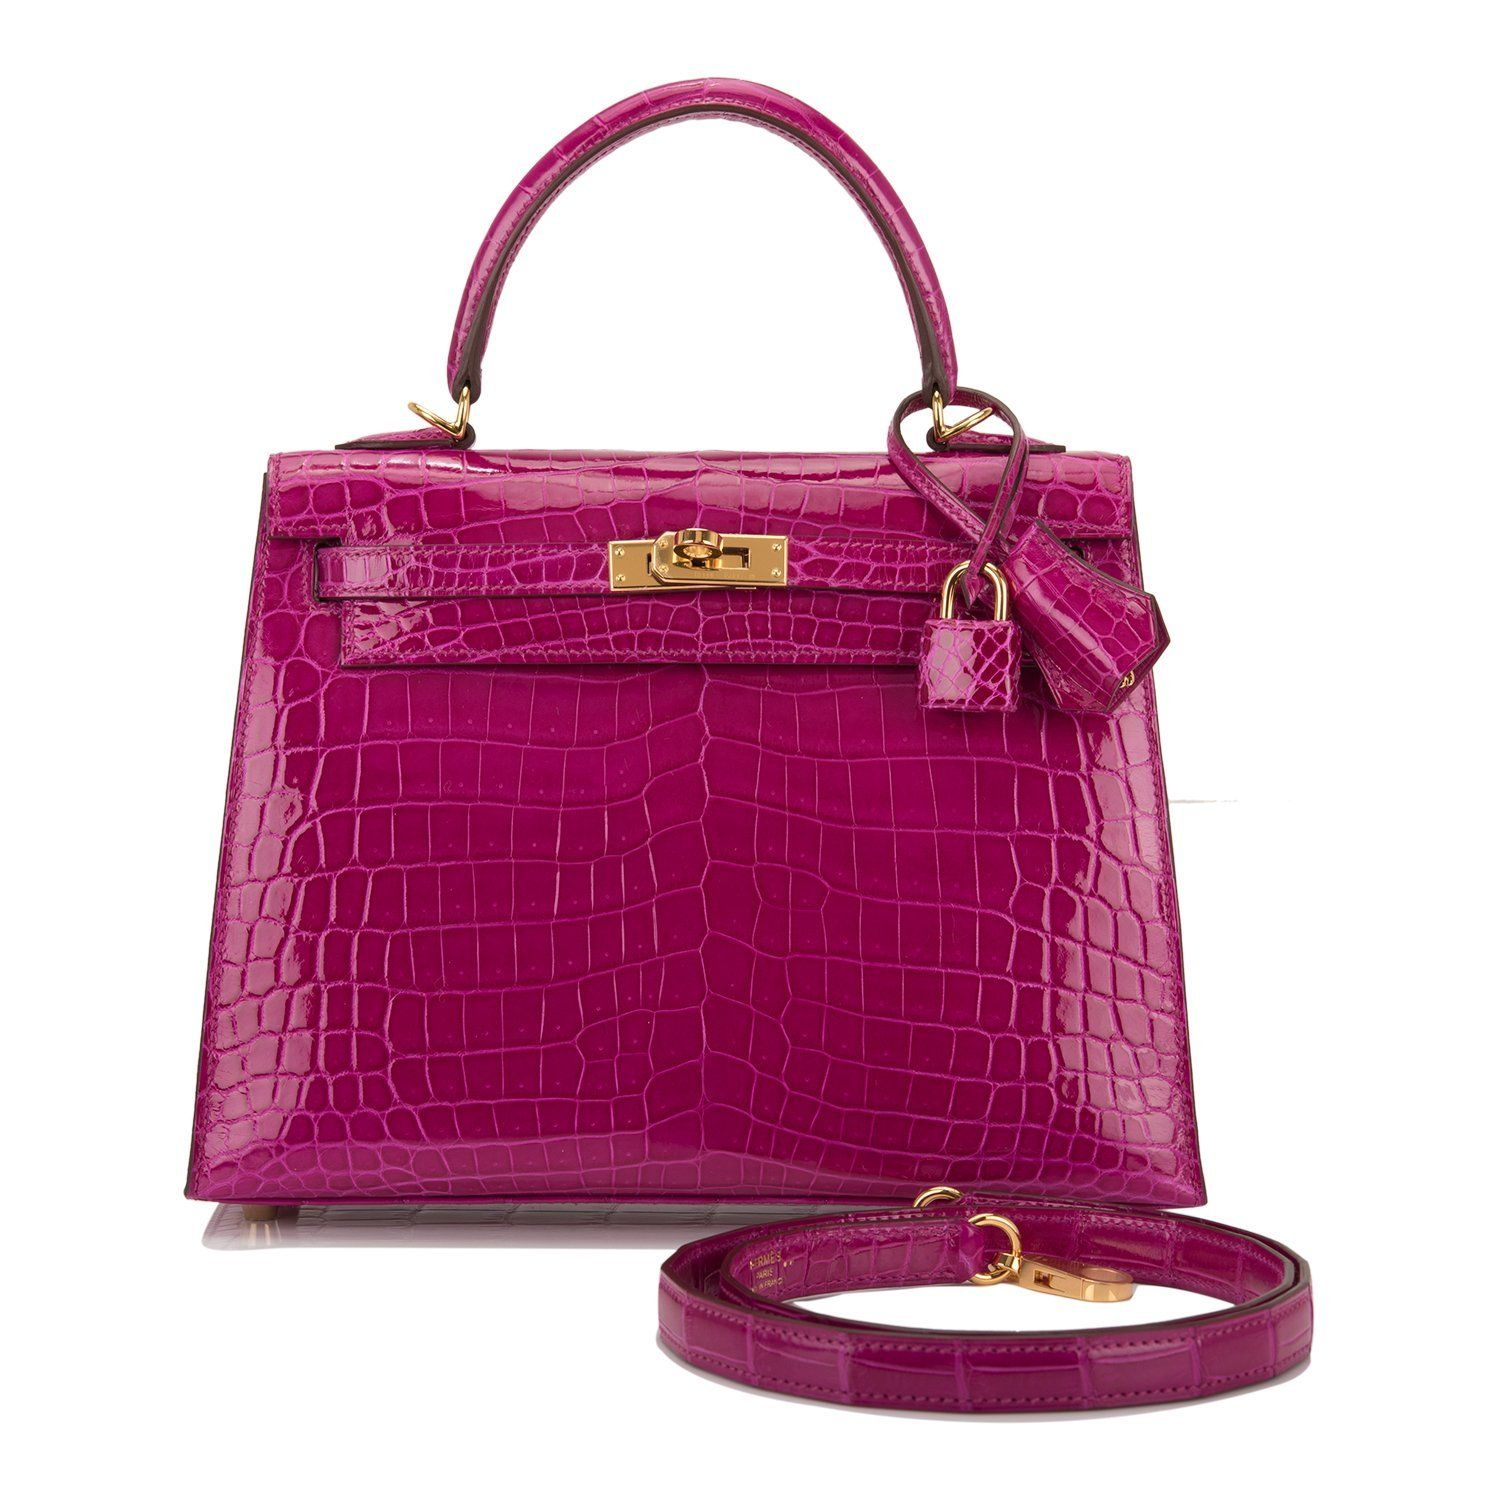 Hermès Kelly 25 Sellier in  Rose Scheherazade  Shiny Niloticus Crocodile  with Gold hardware. Re-sold for  73,000. The bag was made in the Sellier  style in   ... ba7600cf4c